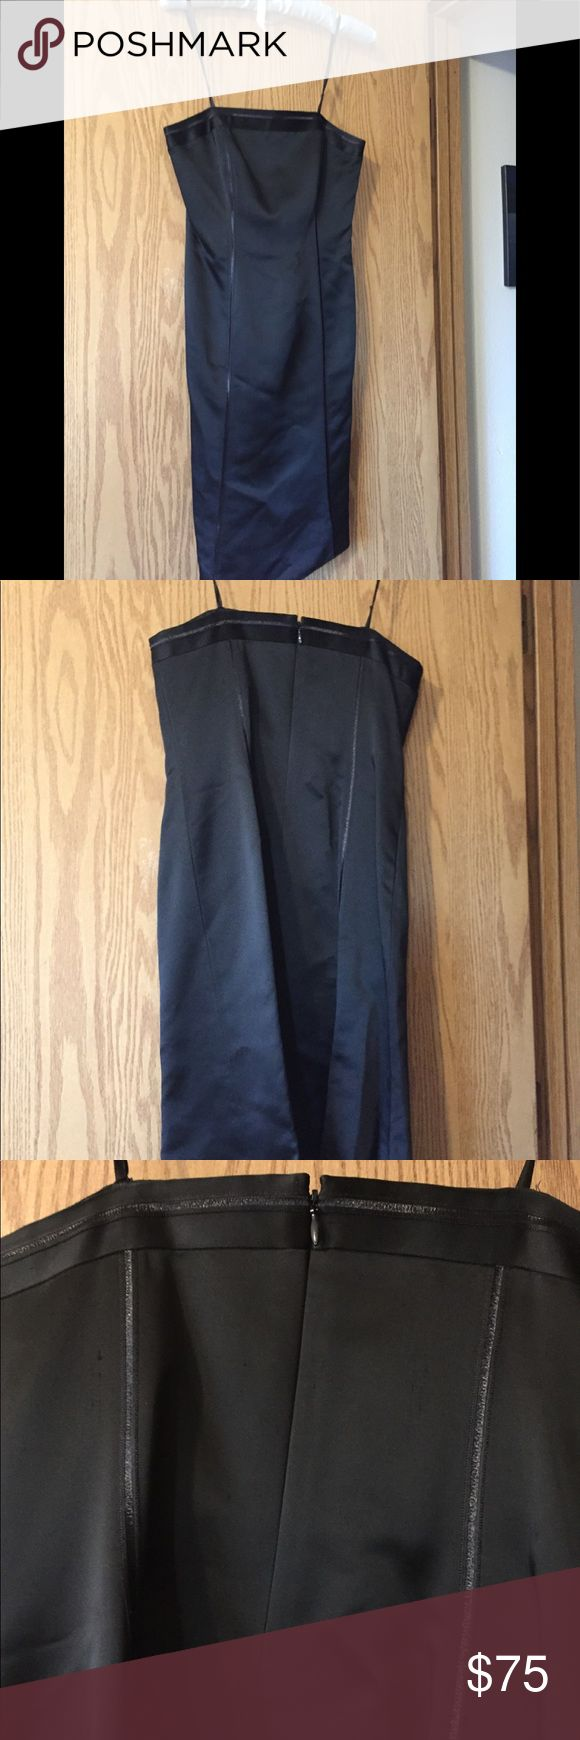 Anne Taylor Petite Black Strapless Dress Anne Taylor Petite Black Strapless Dress. Size 2P.  Sexy strapless dress. Worn once to a ball. Clean & in excellent condition. Good weight to the dress and comfortable. Zips & hooks up on the back.  Length is just below the knees. Great with heels 👠 for that company party or Gala! No trades please. Anne Taylor Petite Dresses Strapless